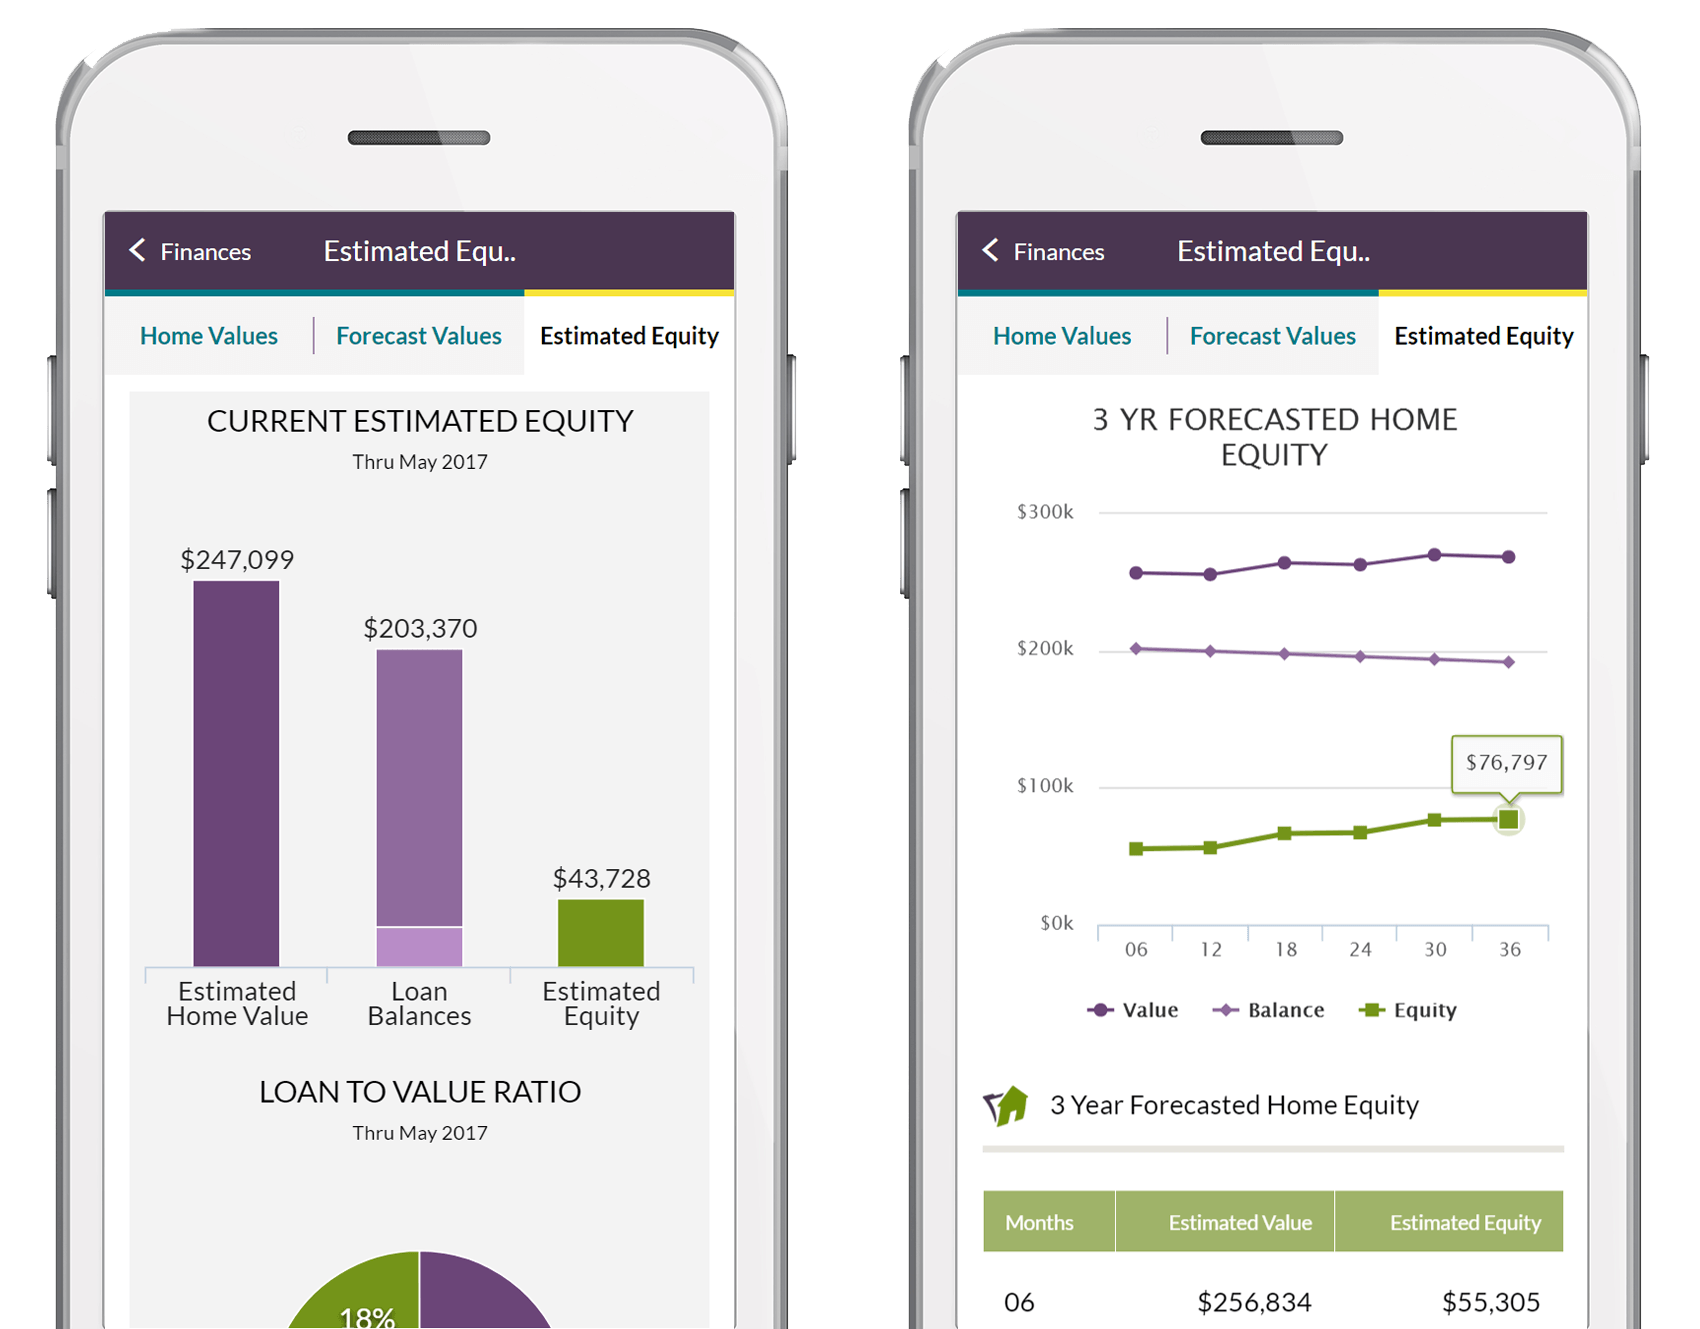 Home Finances dashboard